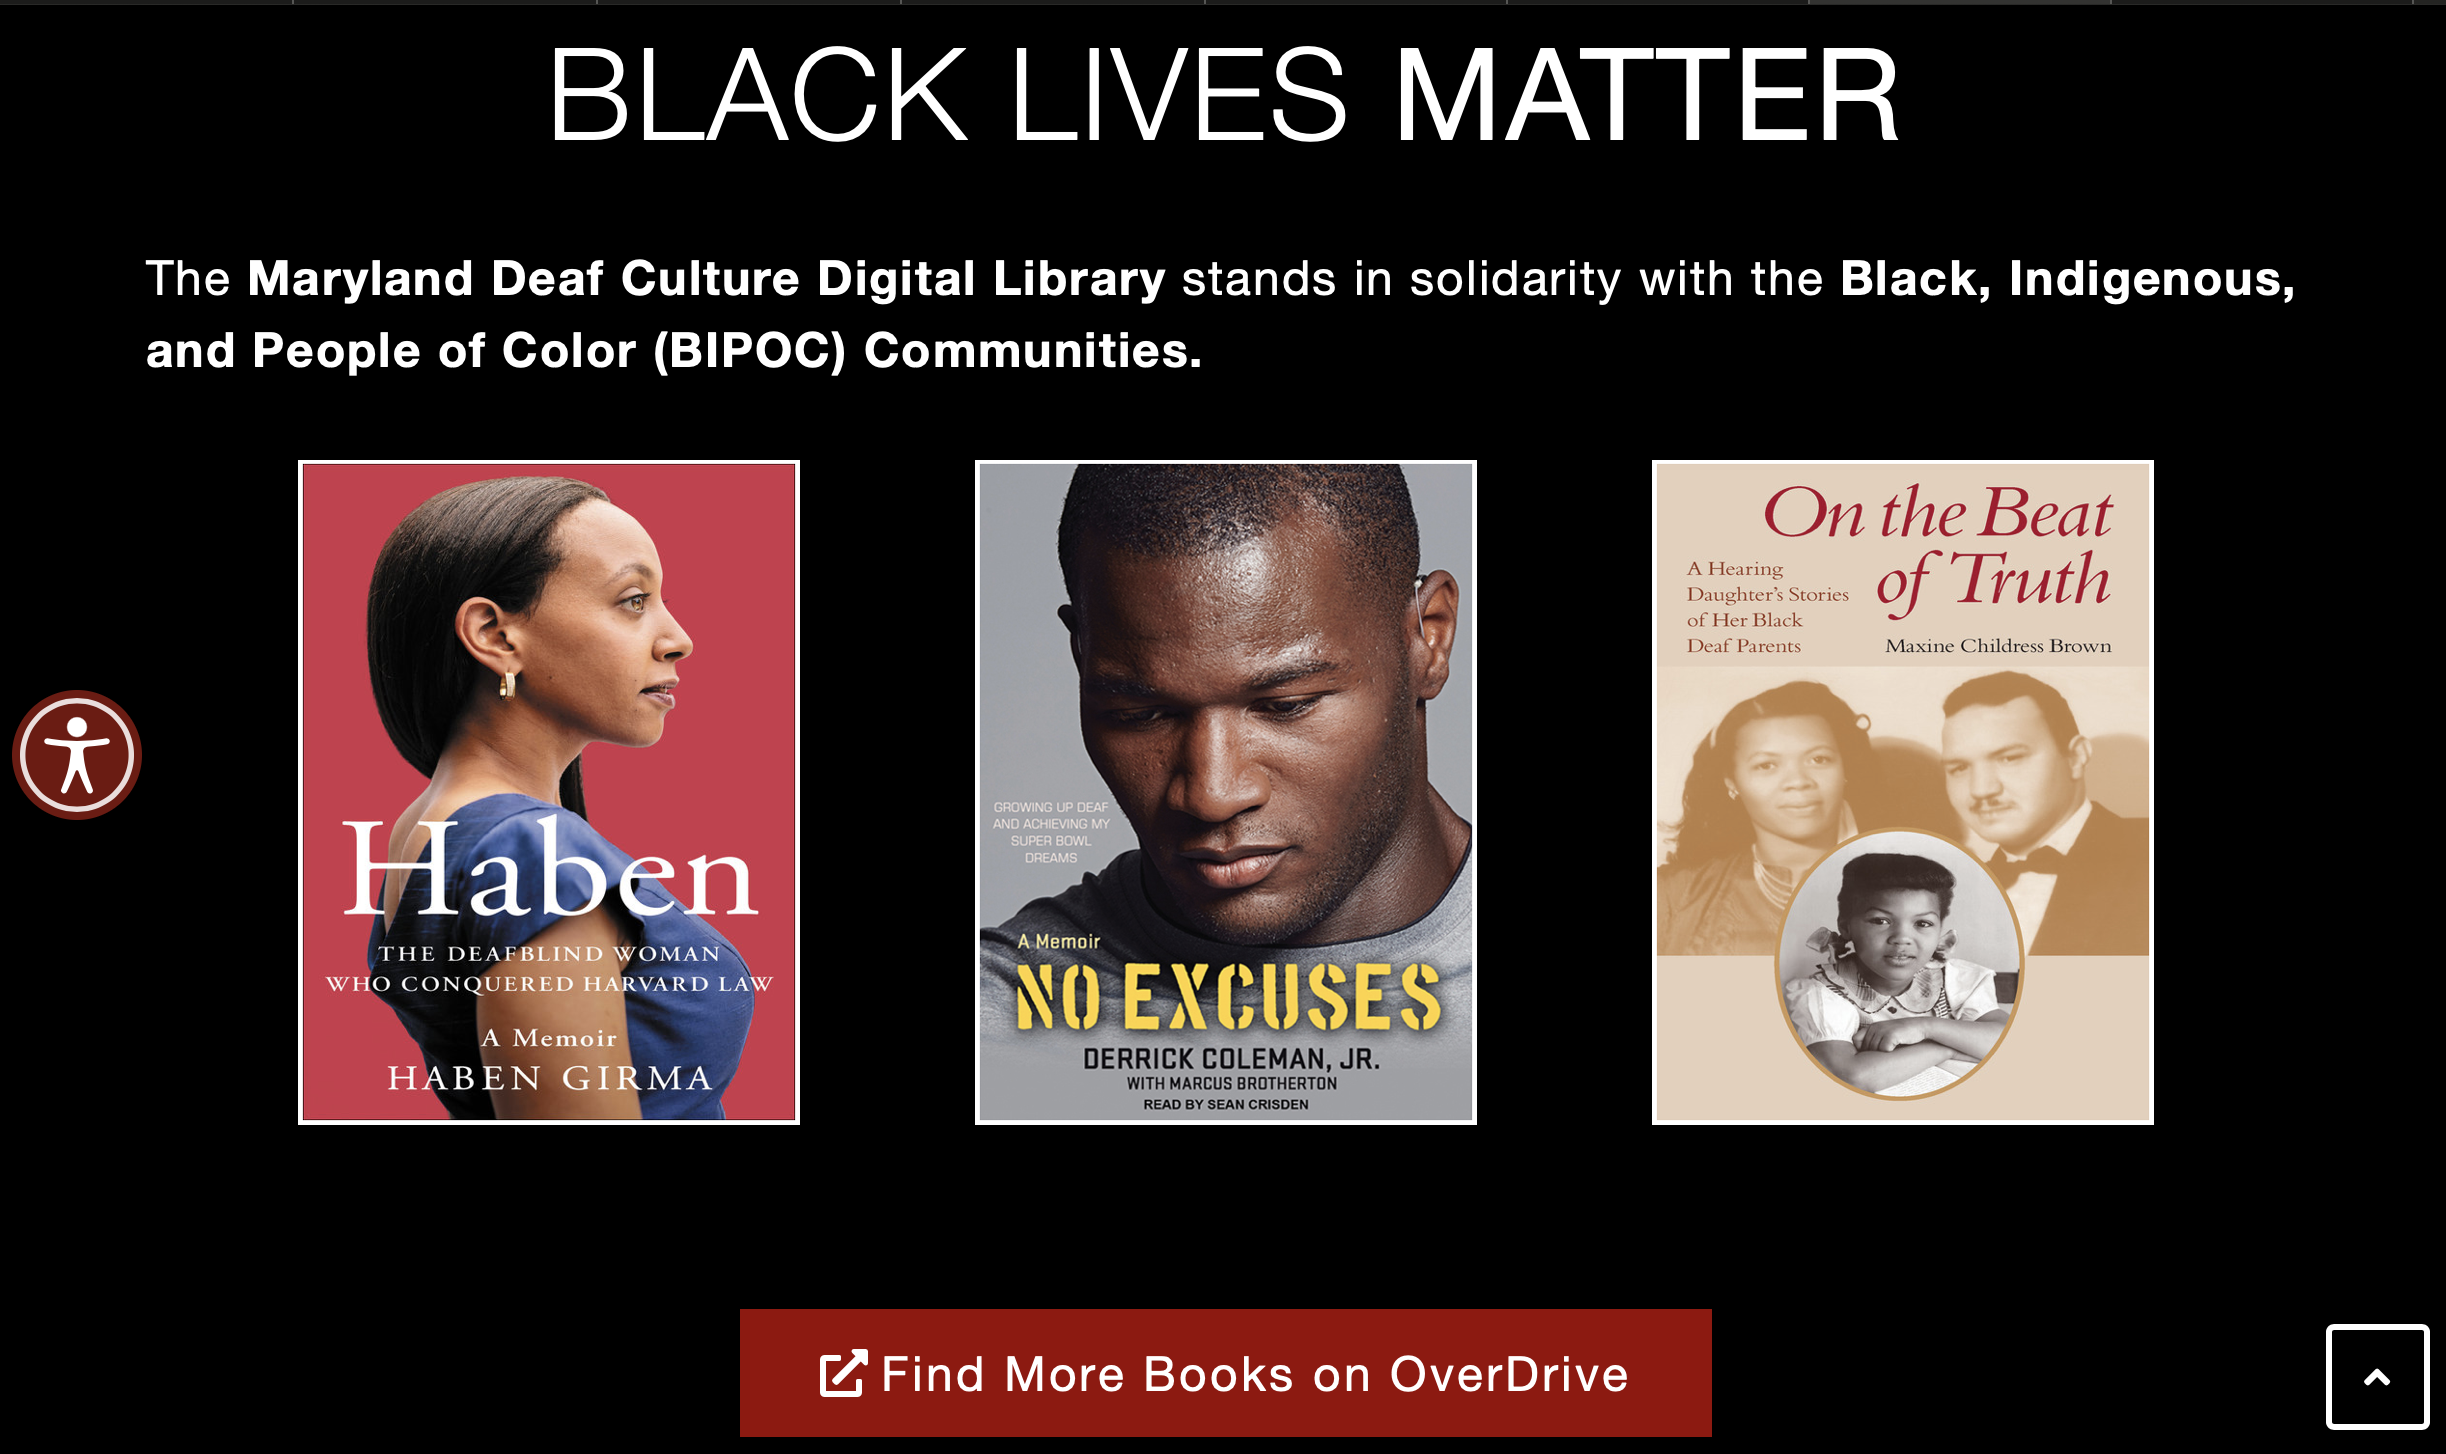 a screen shot of solid black background image with 3 books in 3 columns: Haben; No Excuses; On the Beat of Truth with the headline Black Lives Matter and text below.